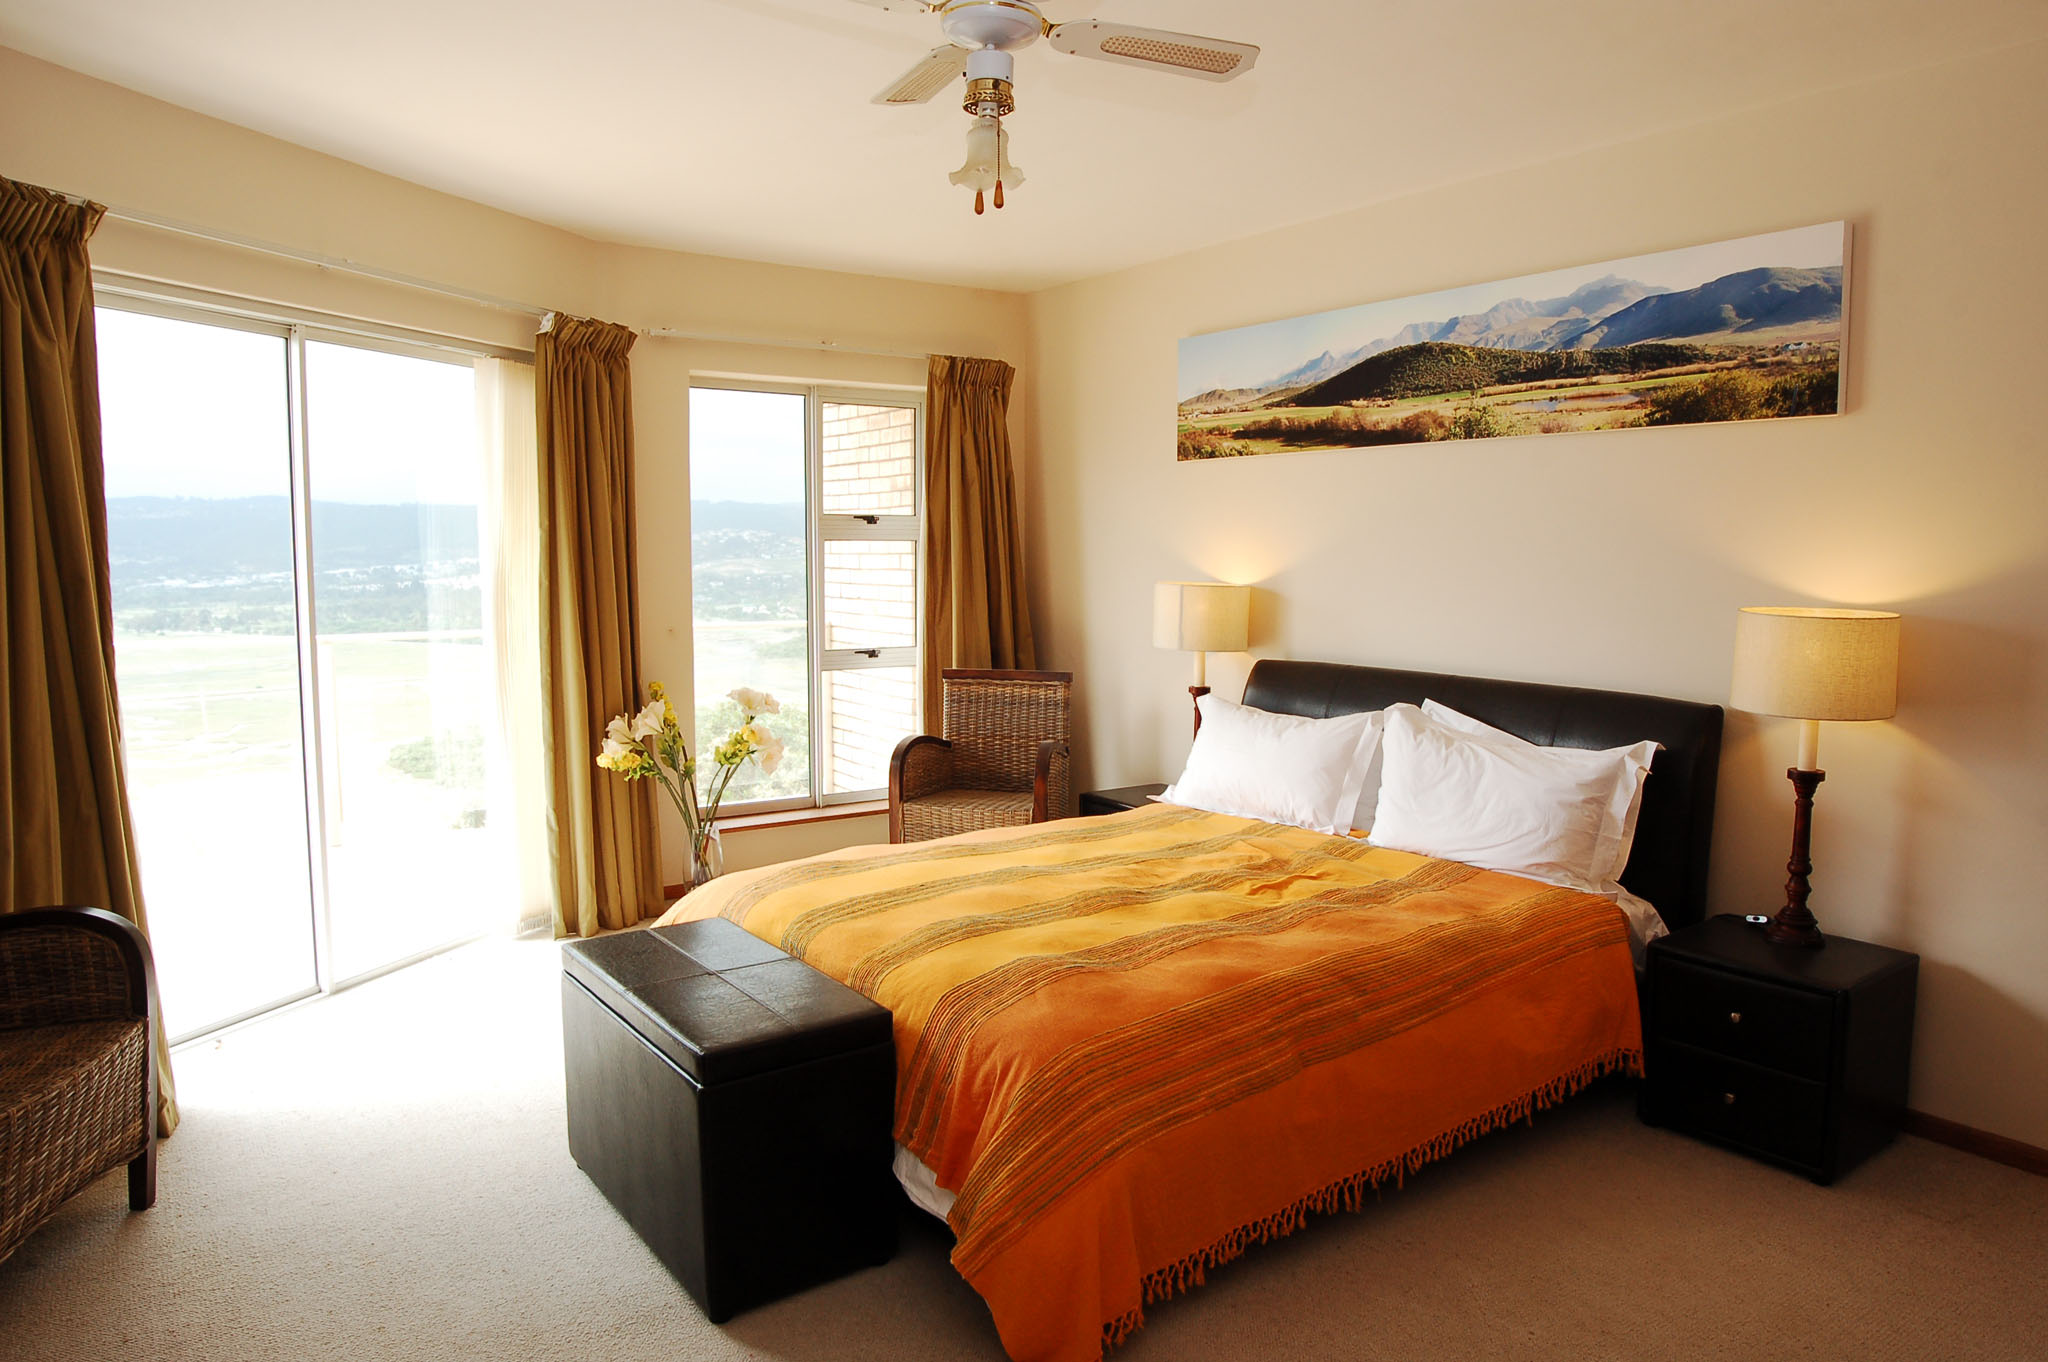 Eagle House, Knysna Heads Accommodation; The Master Bedroom Suite